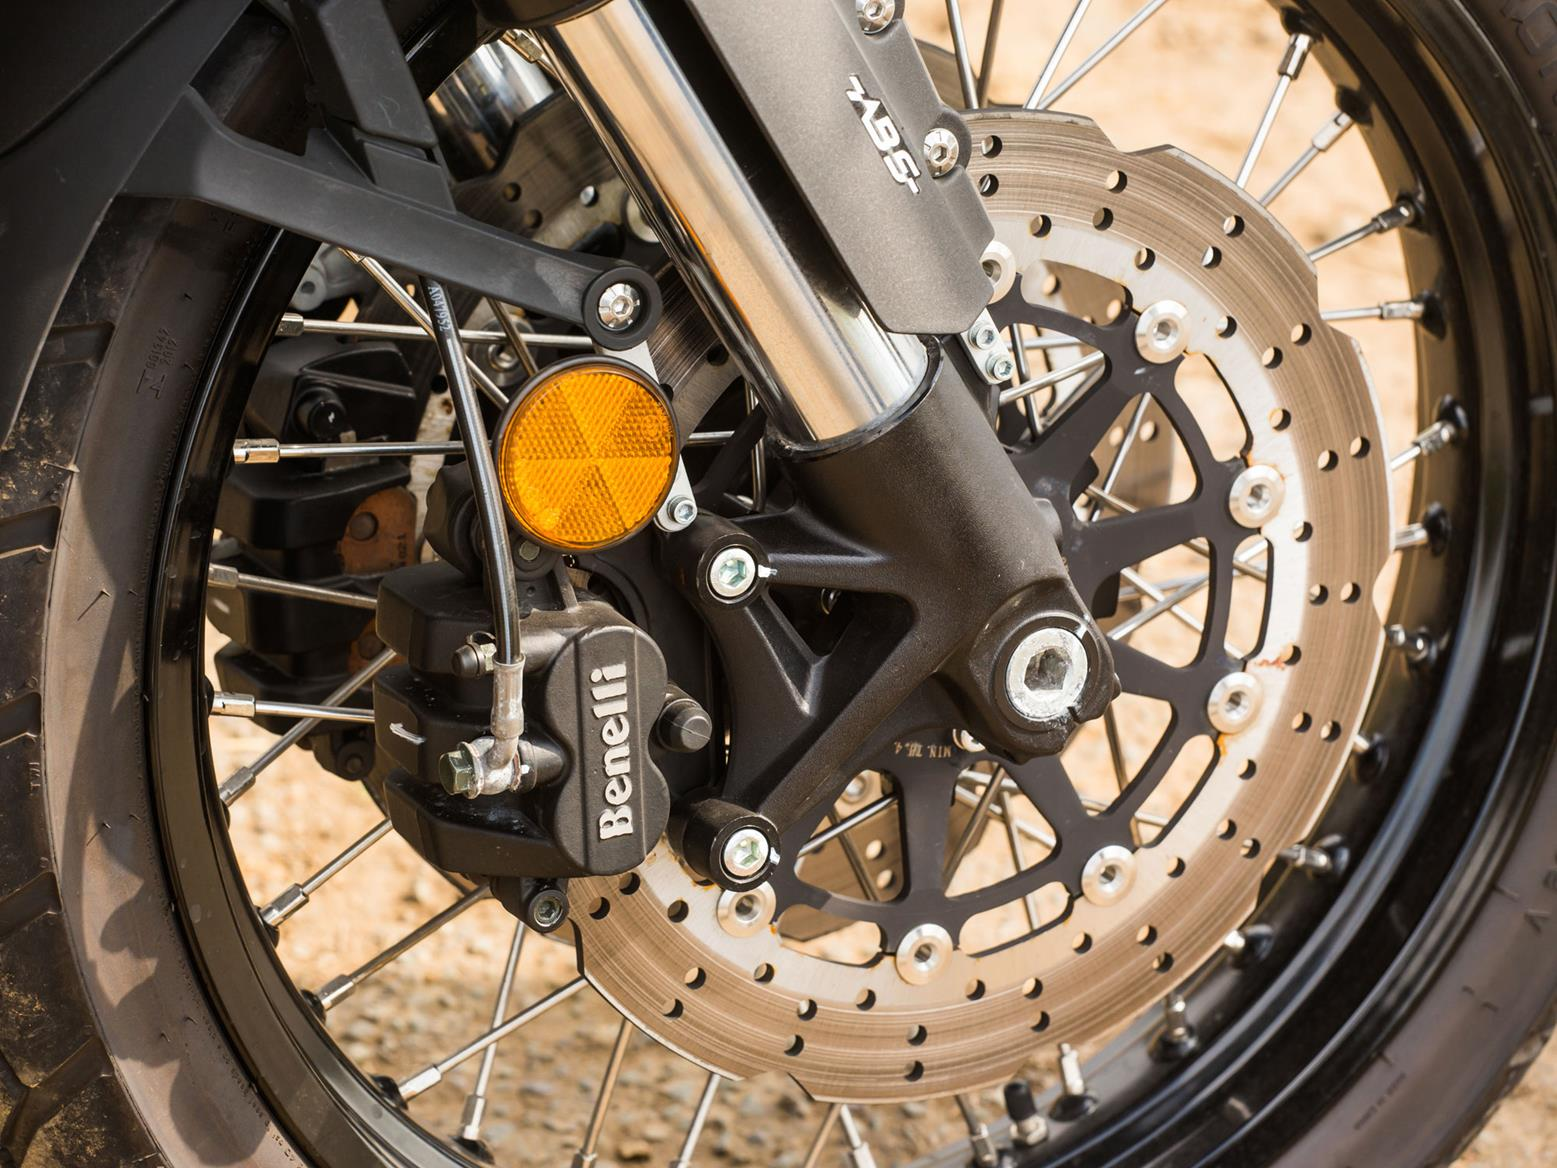 The Benelli TRK 502's front wheel